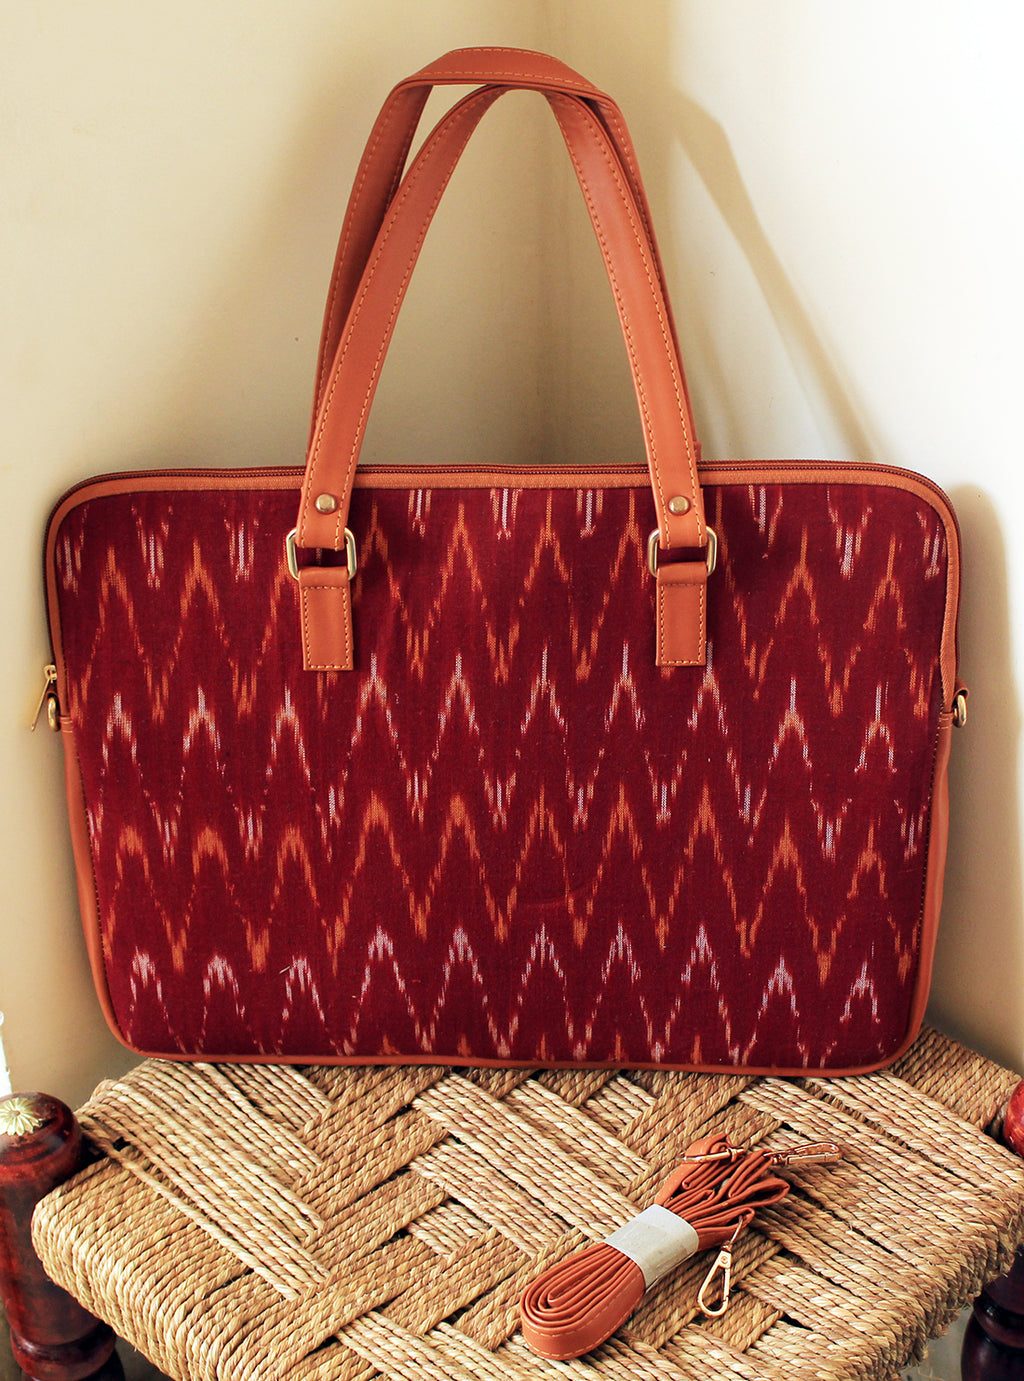 Maroon Handloom Ikkat Cotton Laptop Bag with Adjustable Belt